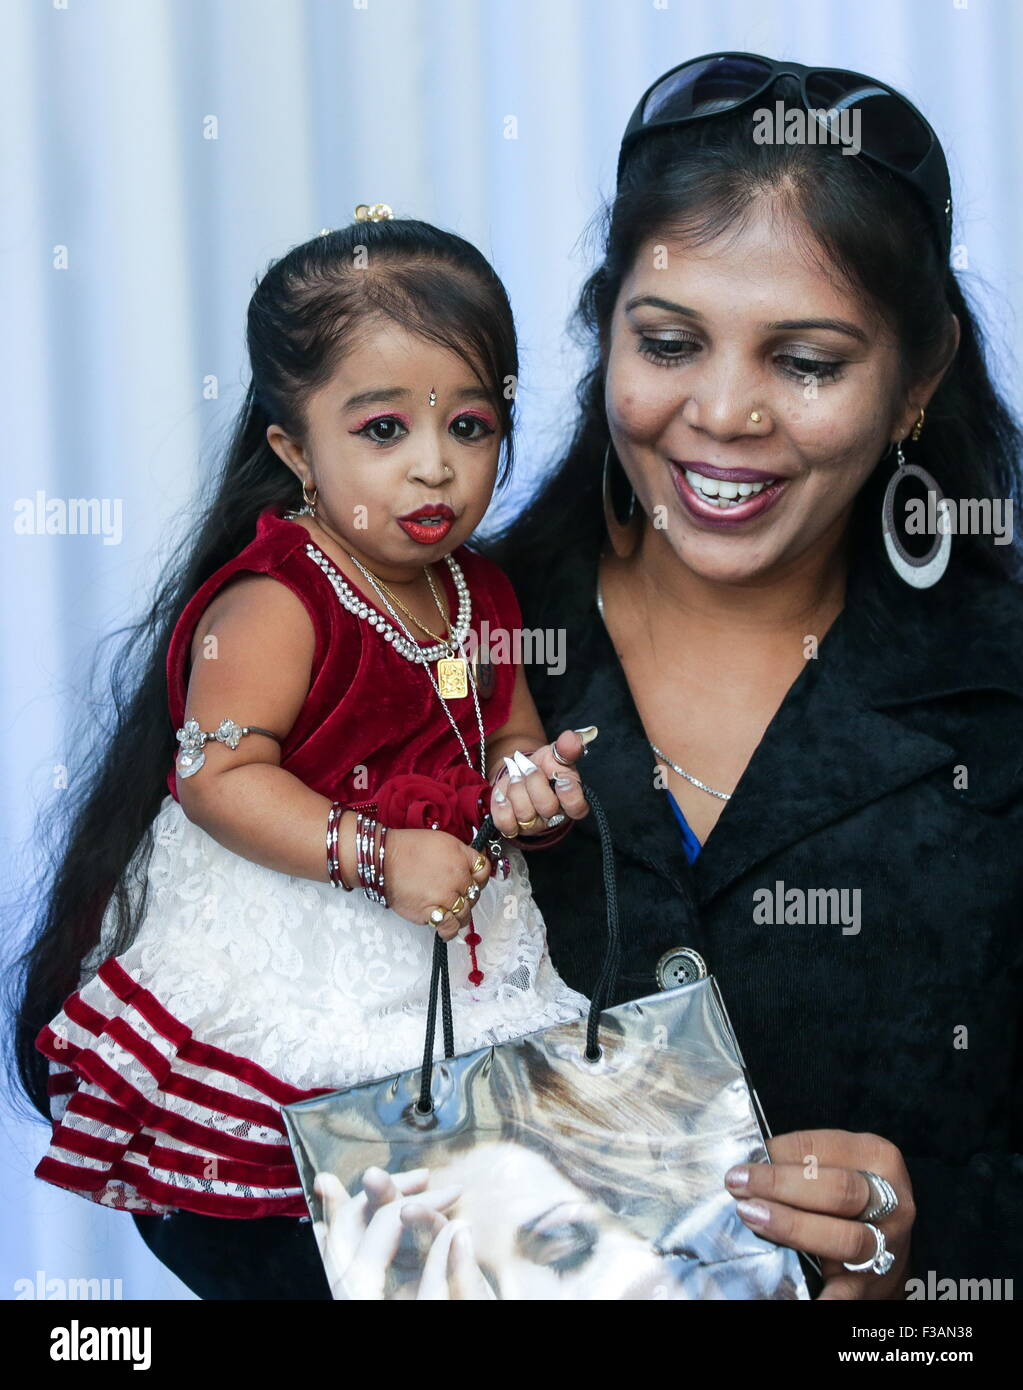 Moscow, Russia. 3rd Oct, 2015. World's shortest woman Jyoti Amge, 62.8cm, attends the opening ceremony of Moscow's Stock Photo